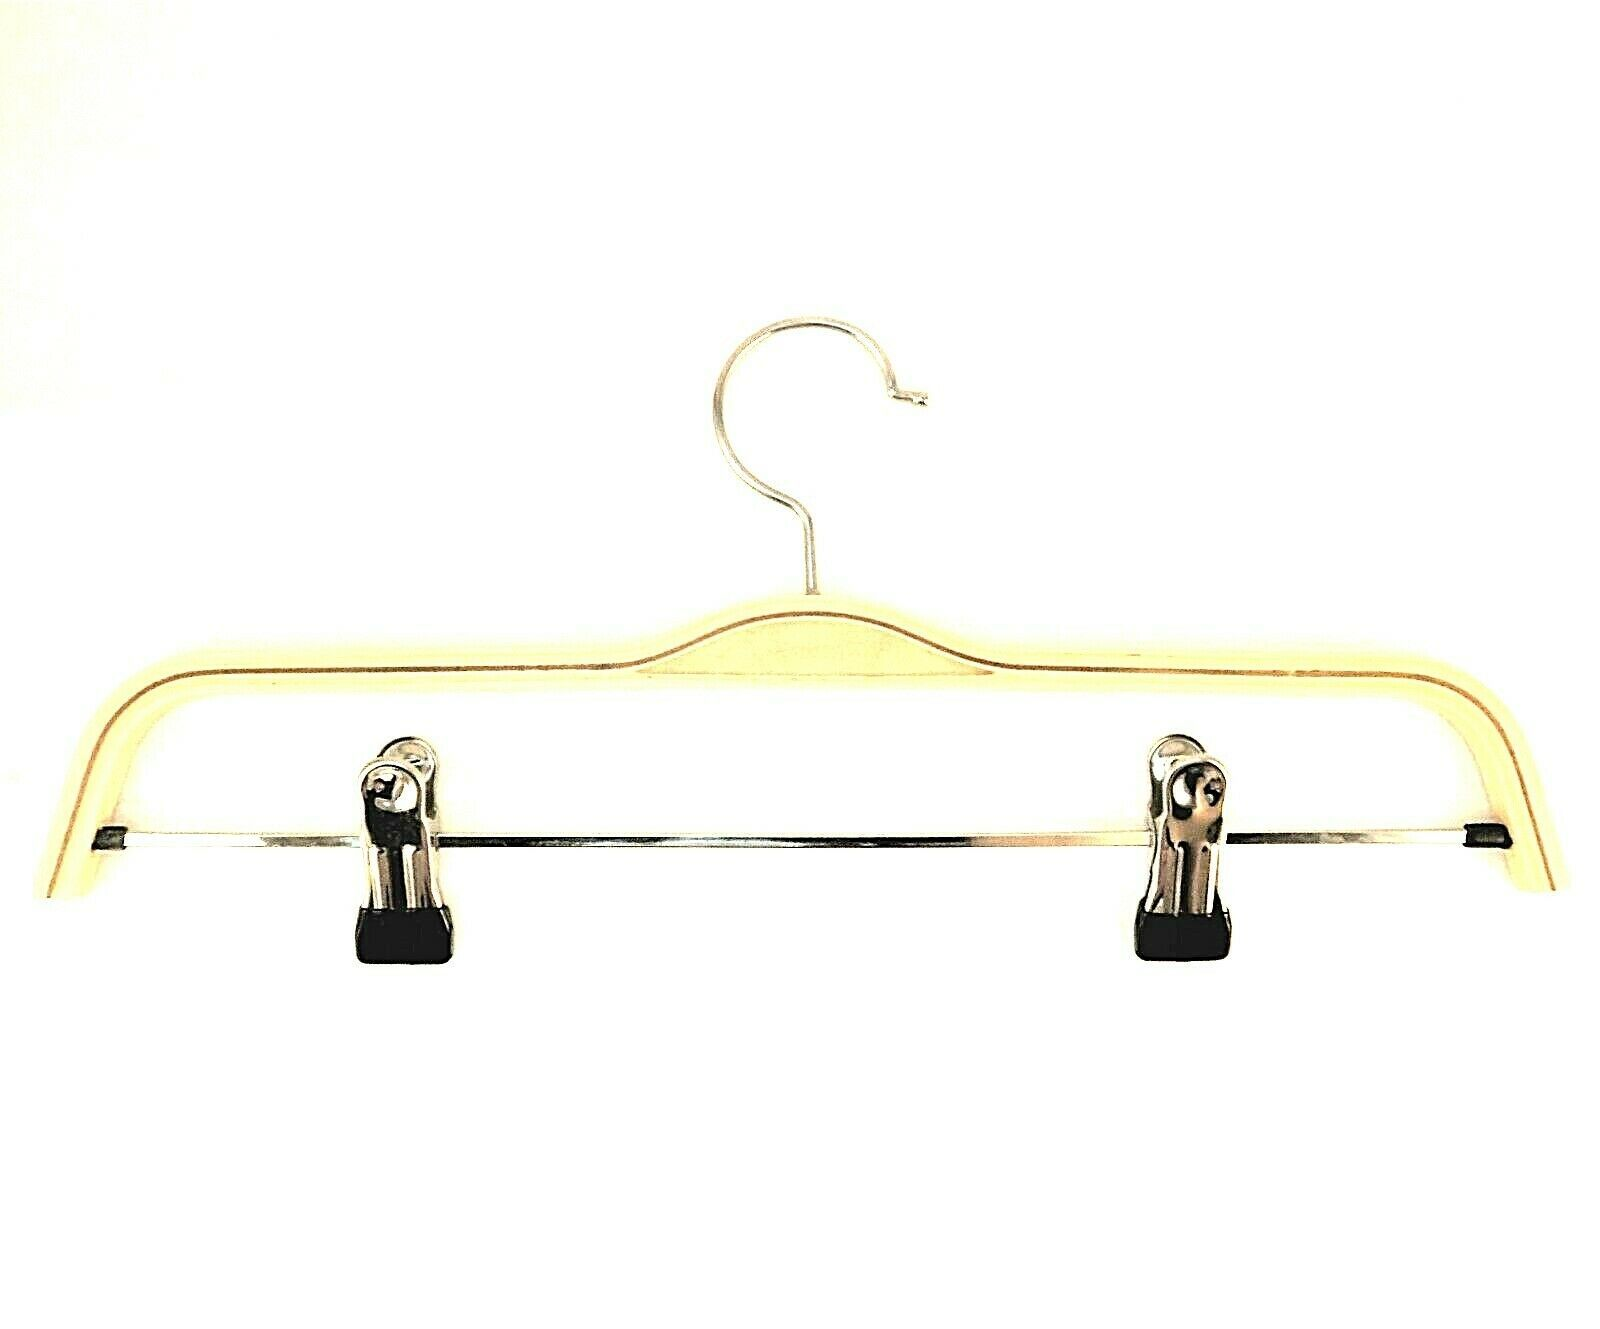 Tosnail Clothes Wood Hangers w/ Metal Clips Natural Finish 10 Pack (See Details) - $9.89